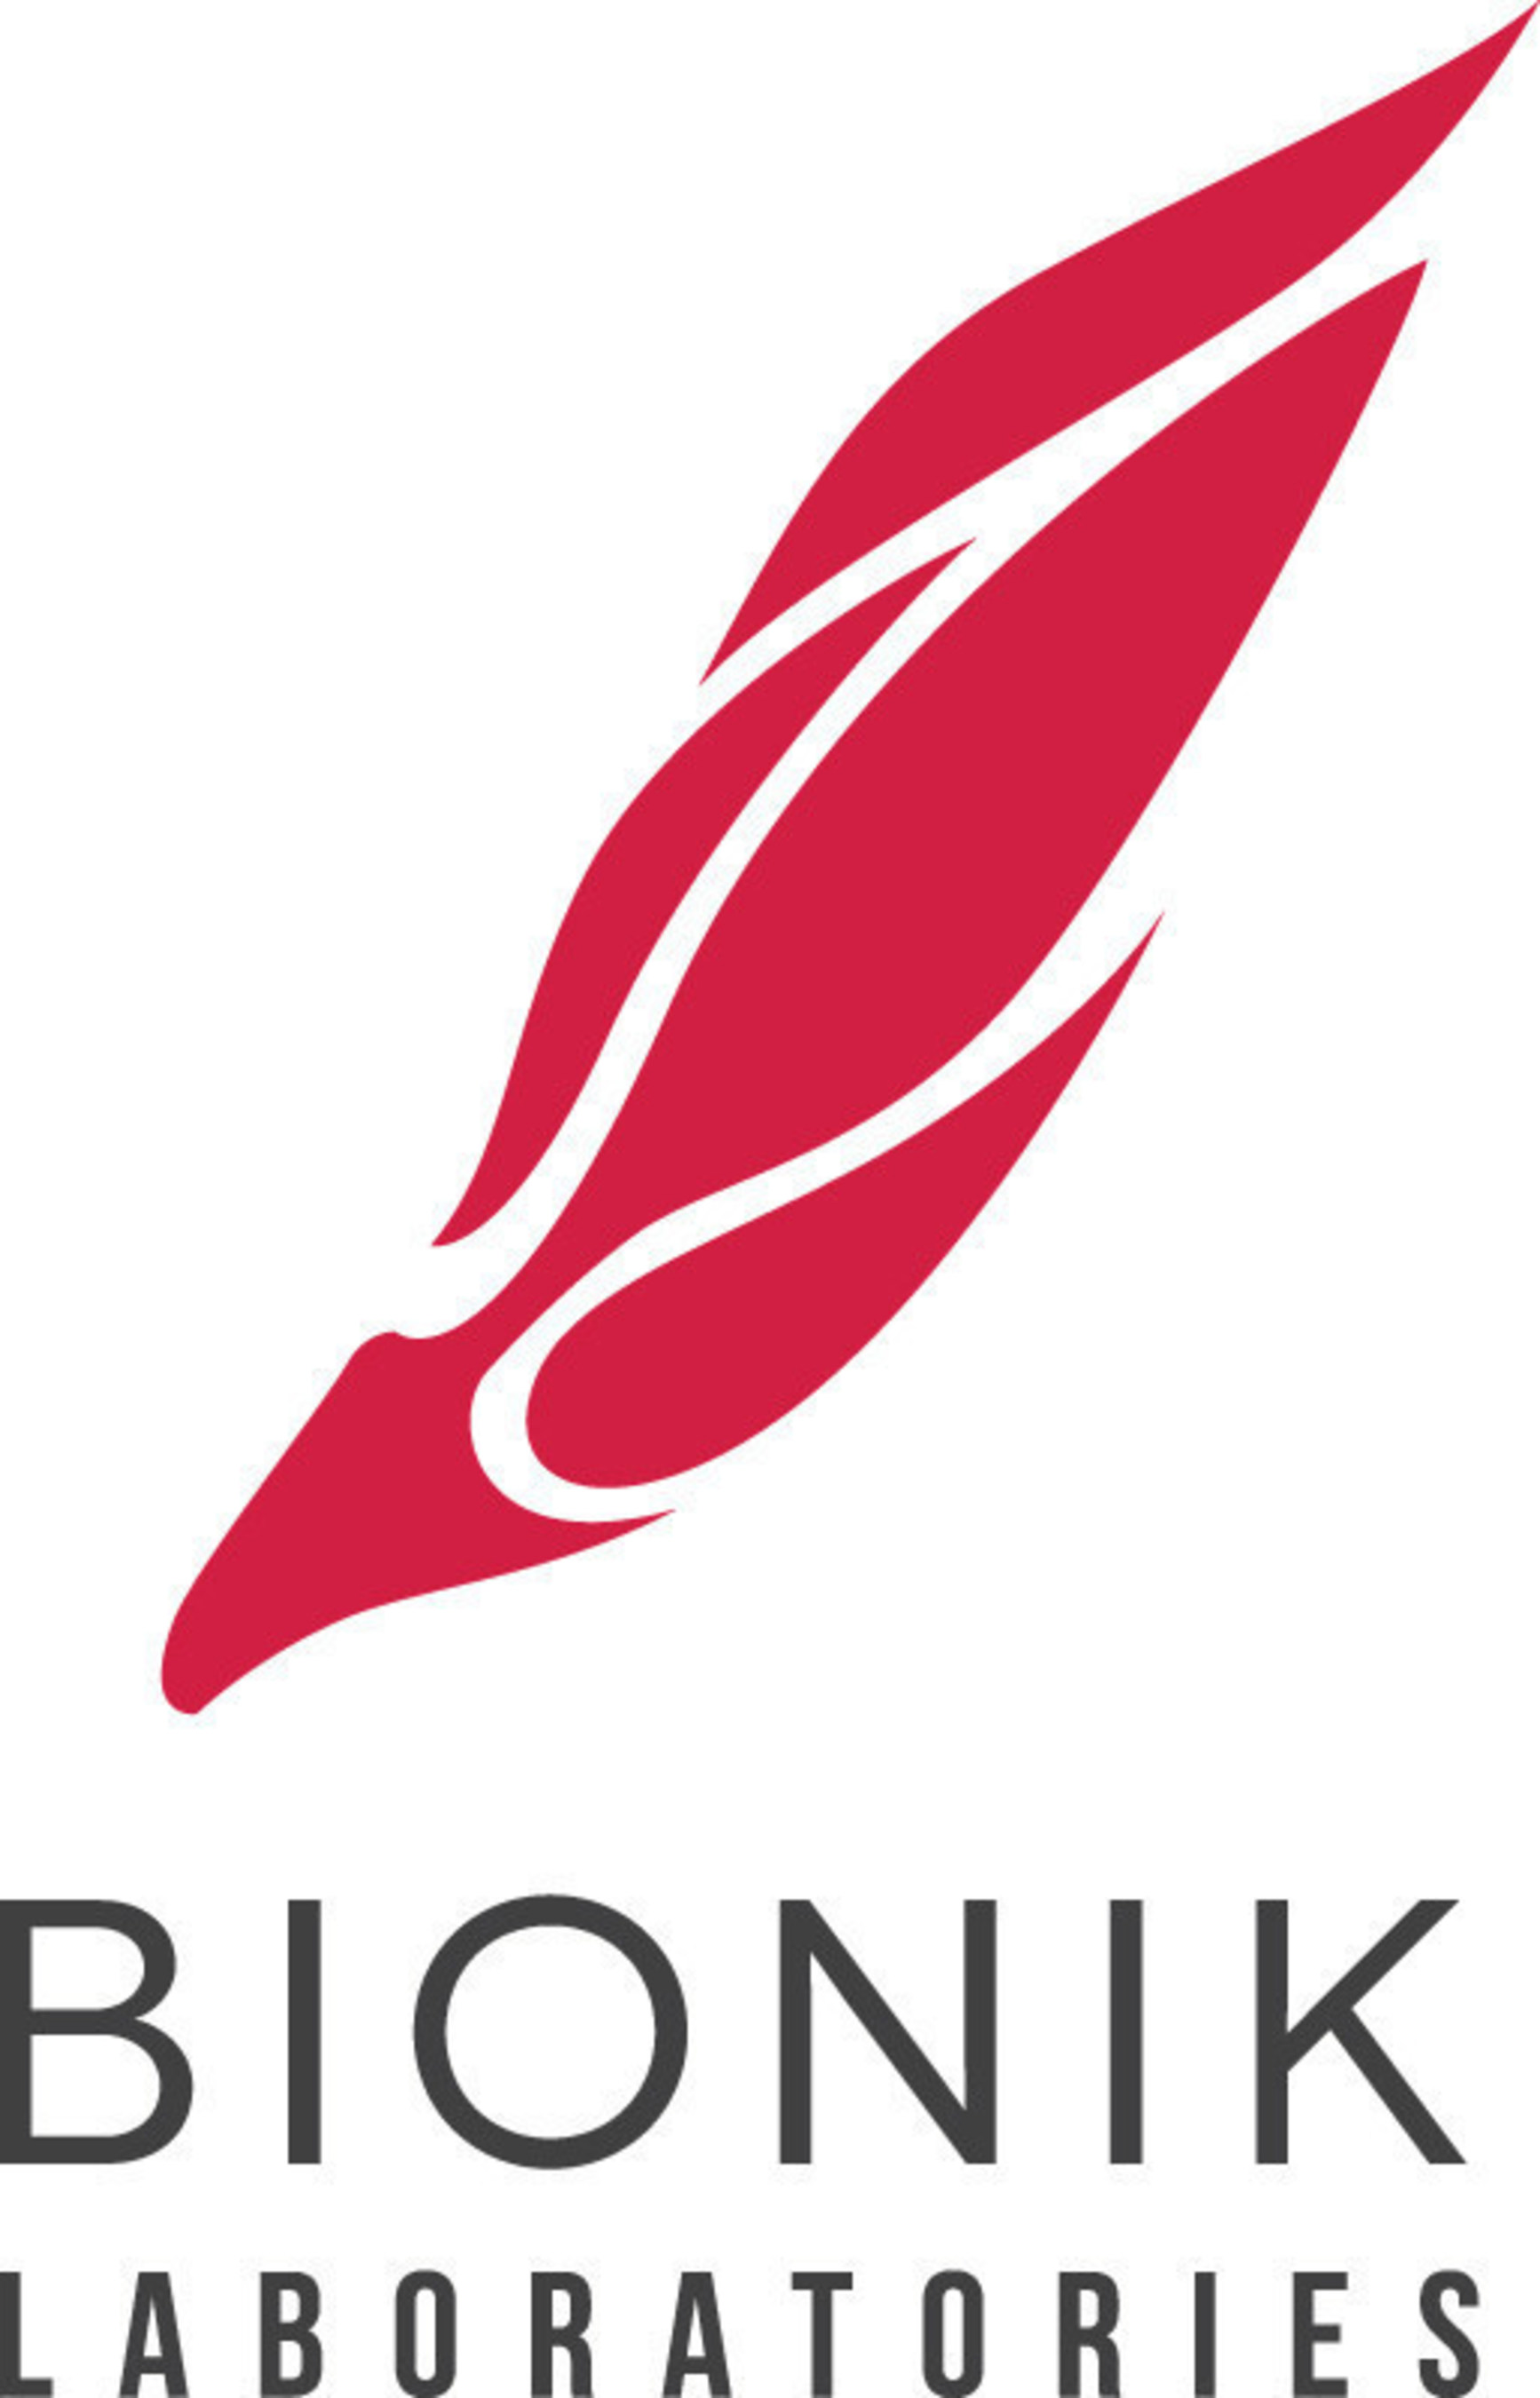 Bionik Laboratories Corp. logo